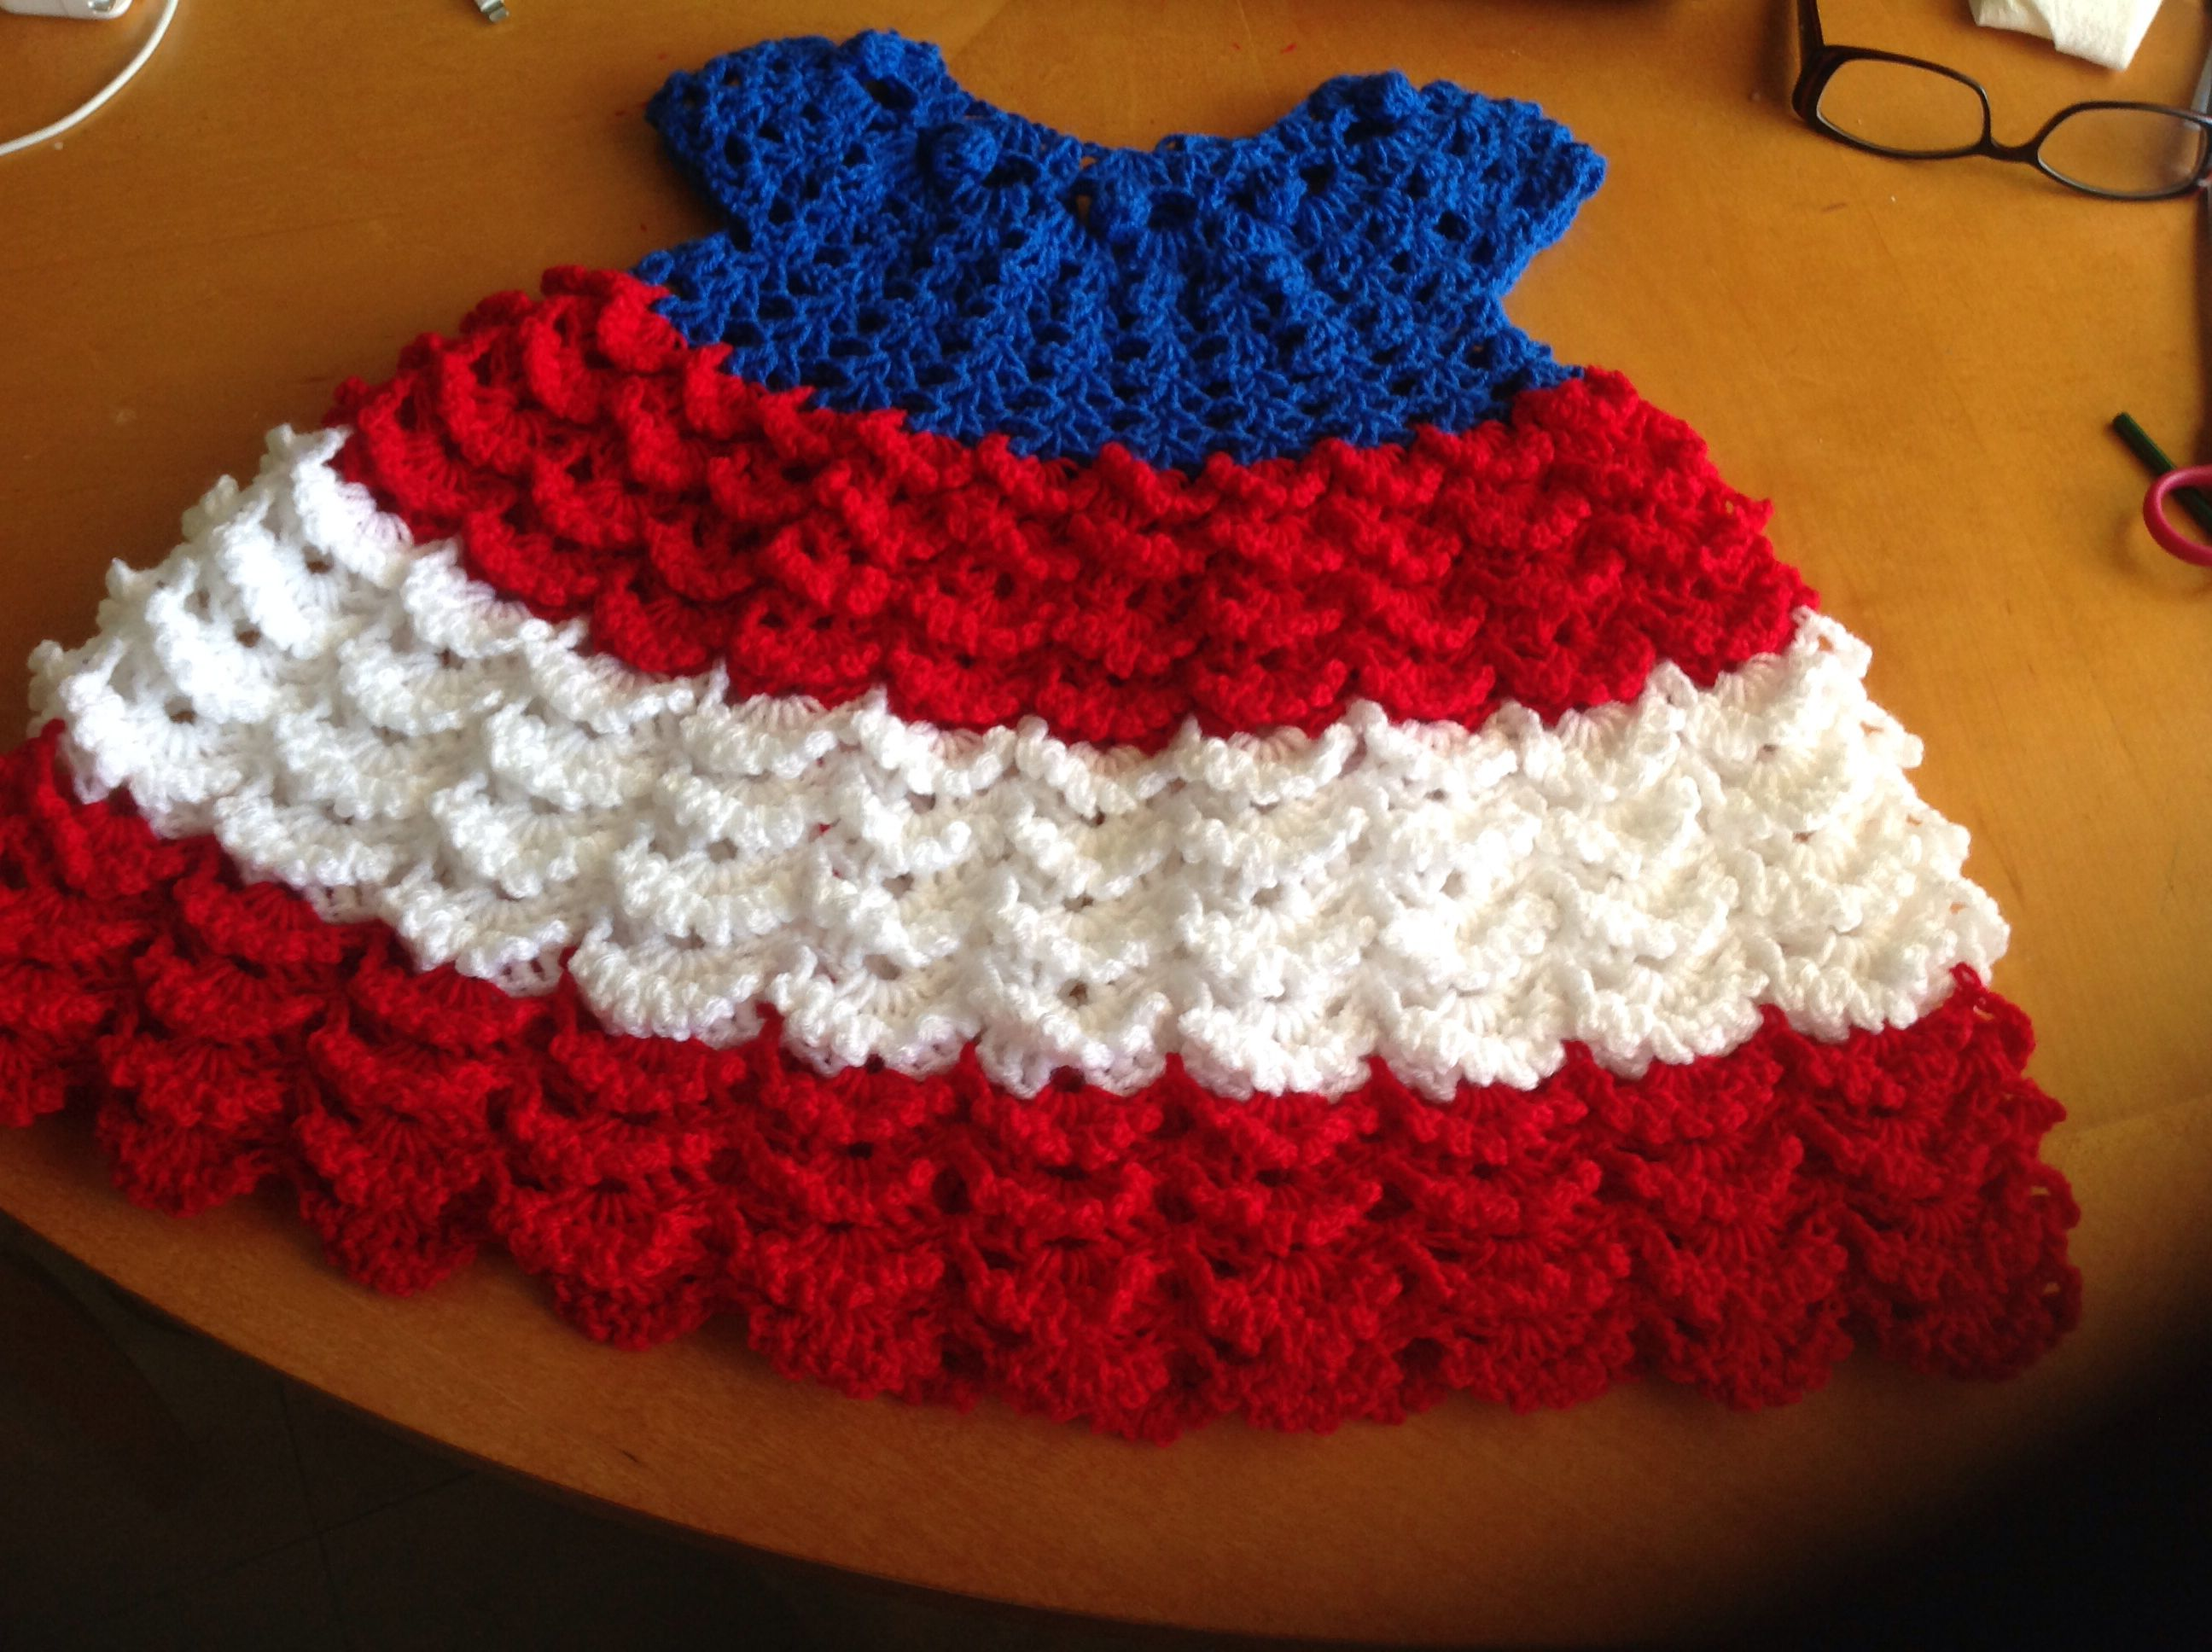 Crocheting For A Cause : ... by Suzanne Broadhurst on Crochet for a Cause: American Military